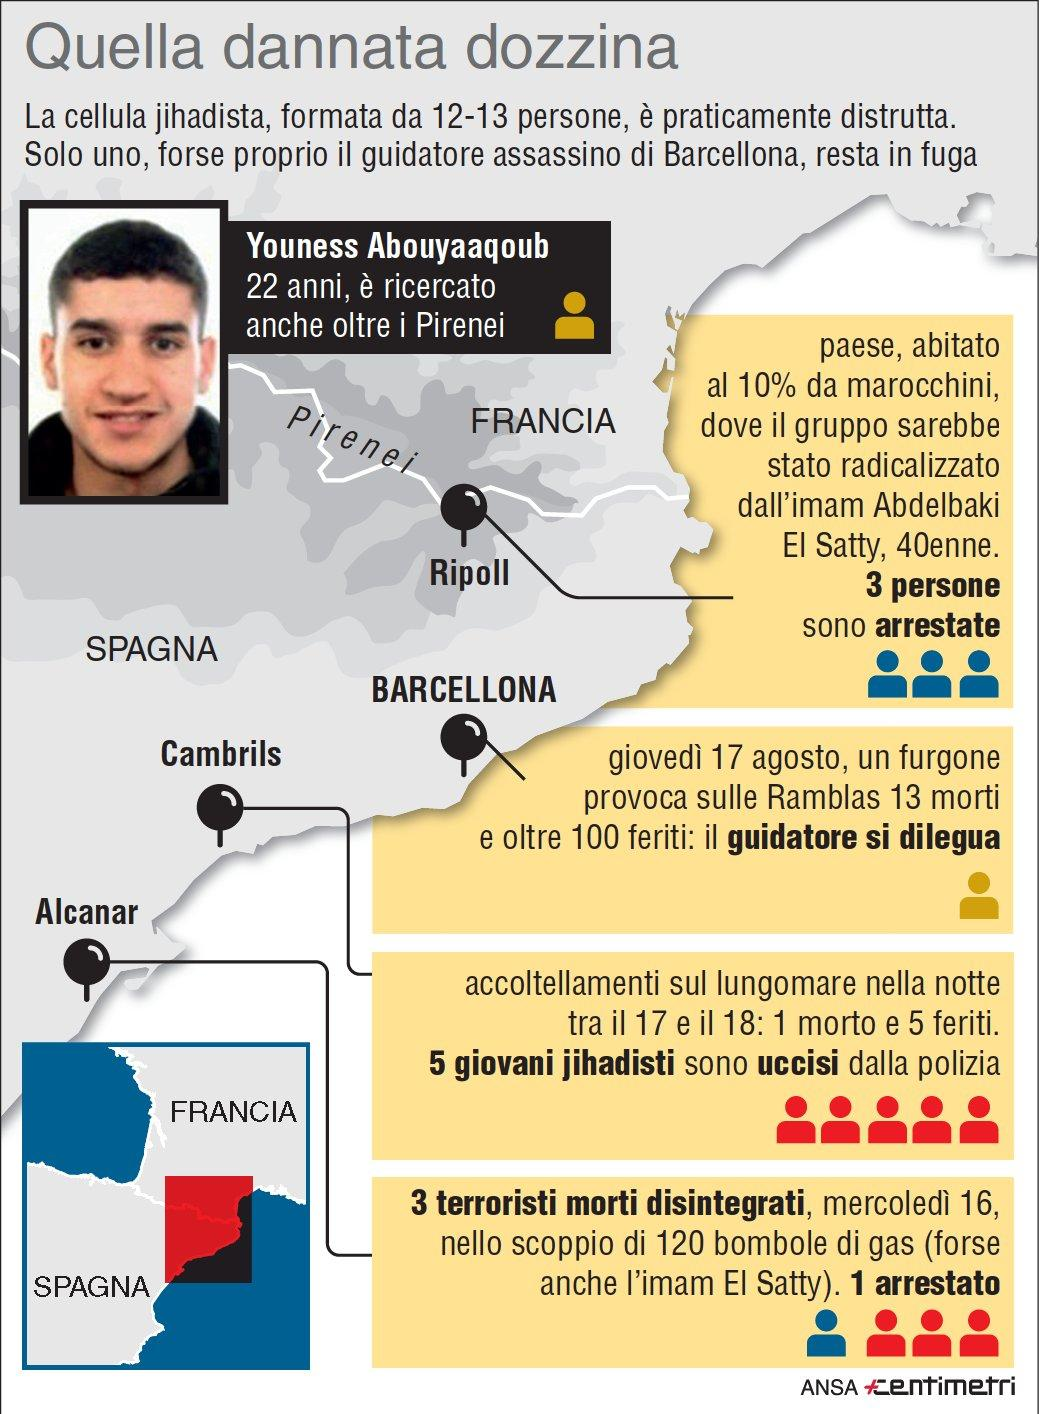 La cellula jihadista dell attentato di Barcellona